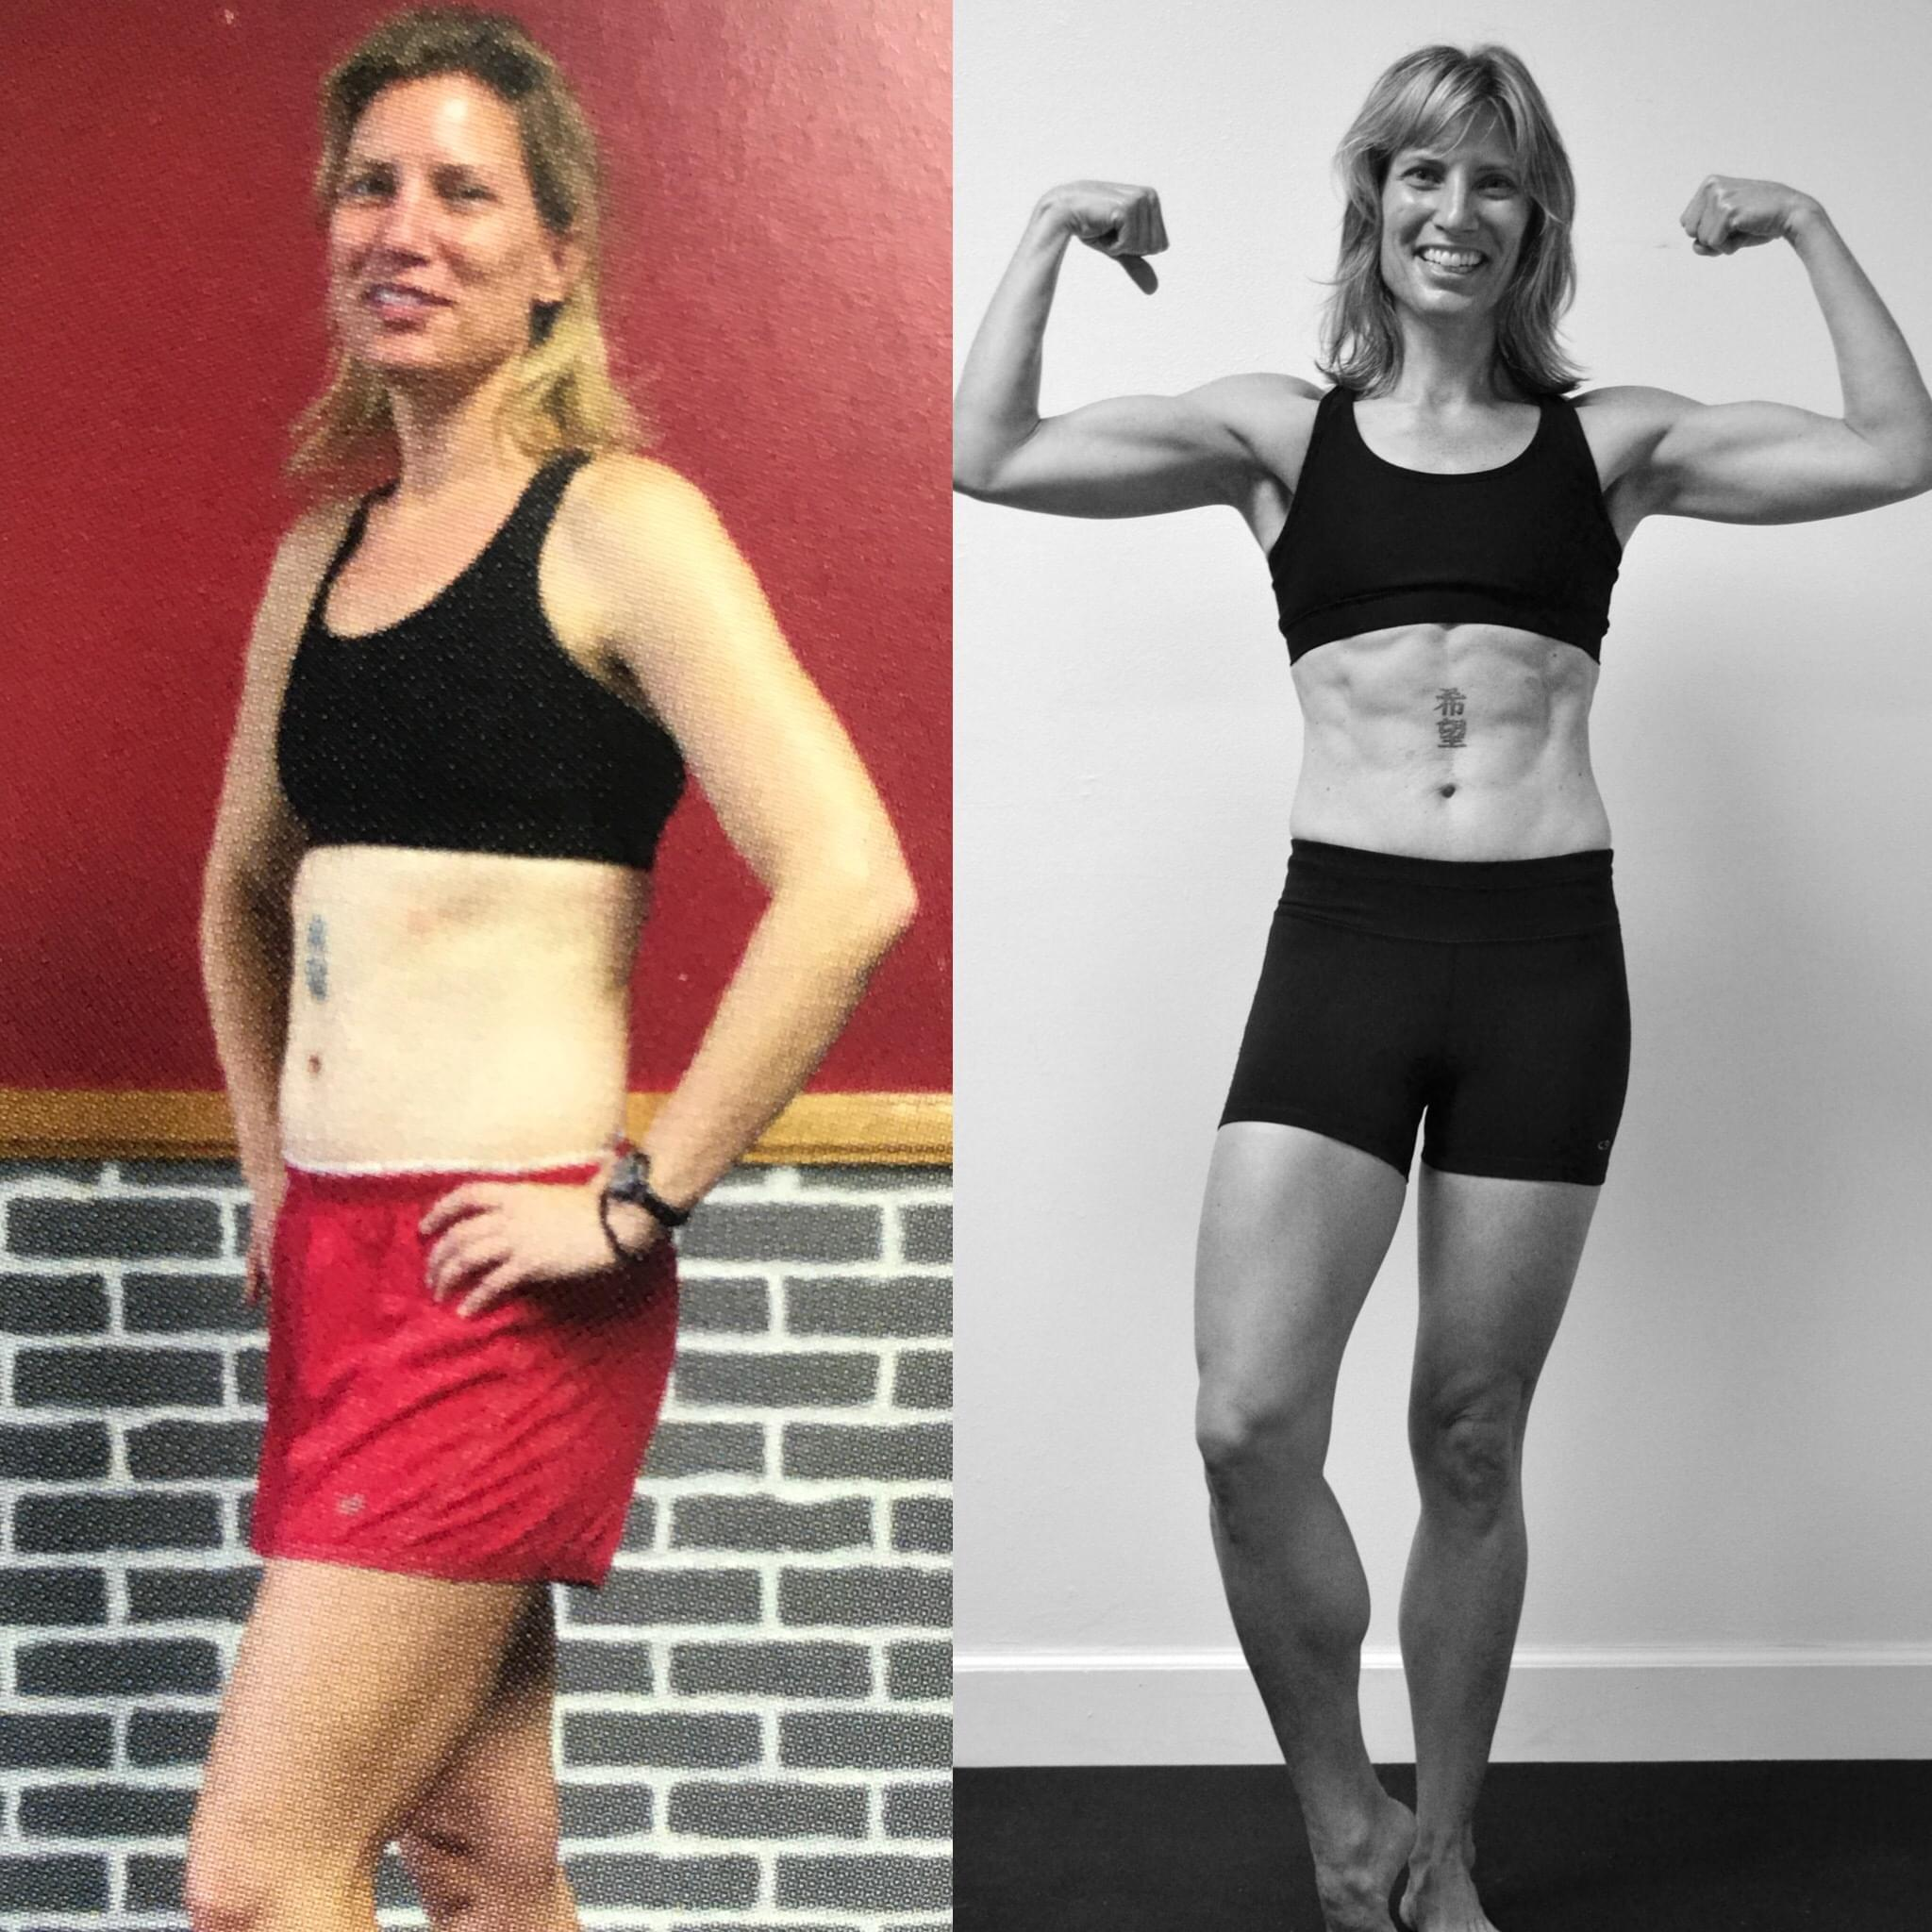 Don't think you have the mental strength or will power to TRANSFORM? Read Amy's Story... - I love CrossFit and what Keoni has built. TRANSFORM is just one reason I've stuck with the CrossFit lifestyle for over seven years. I've made great friends, new running and triathlon partners, and I'm pushed to train for strength, which I'd never do on my own. Mental barriers in fitness and life were holding me back. My CrossFit journey has helped me realize, though it's scary sometimes, the power is within.-Amy Asselbaye